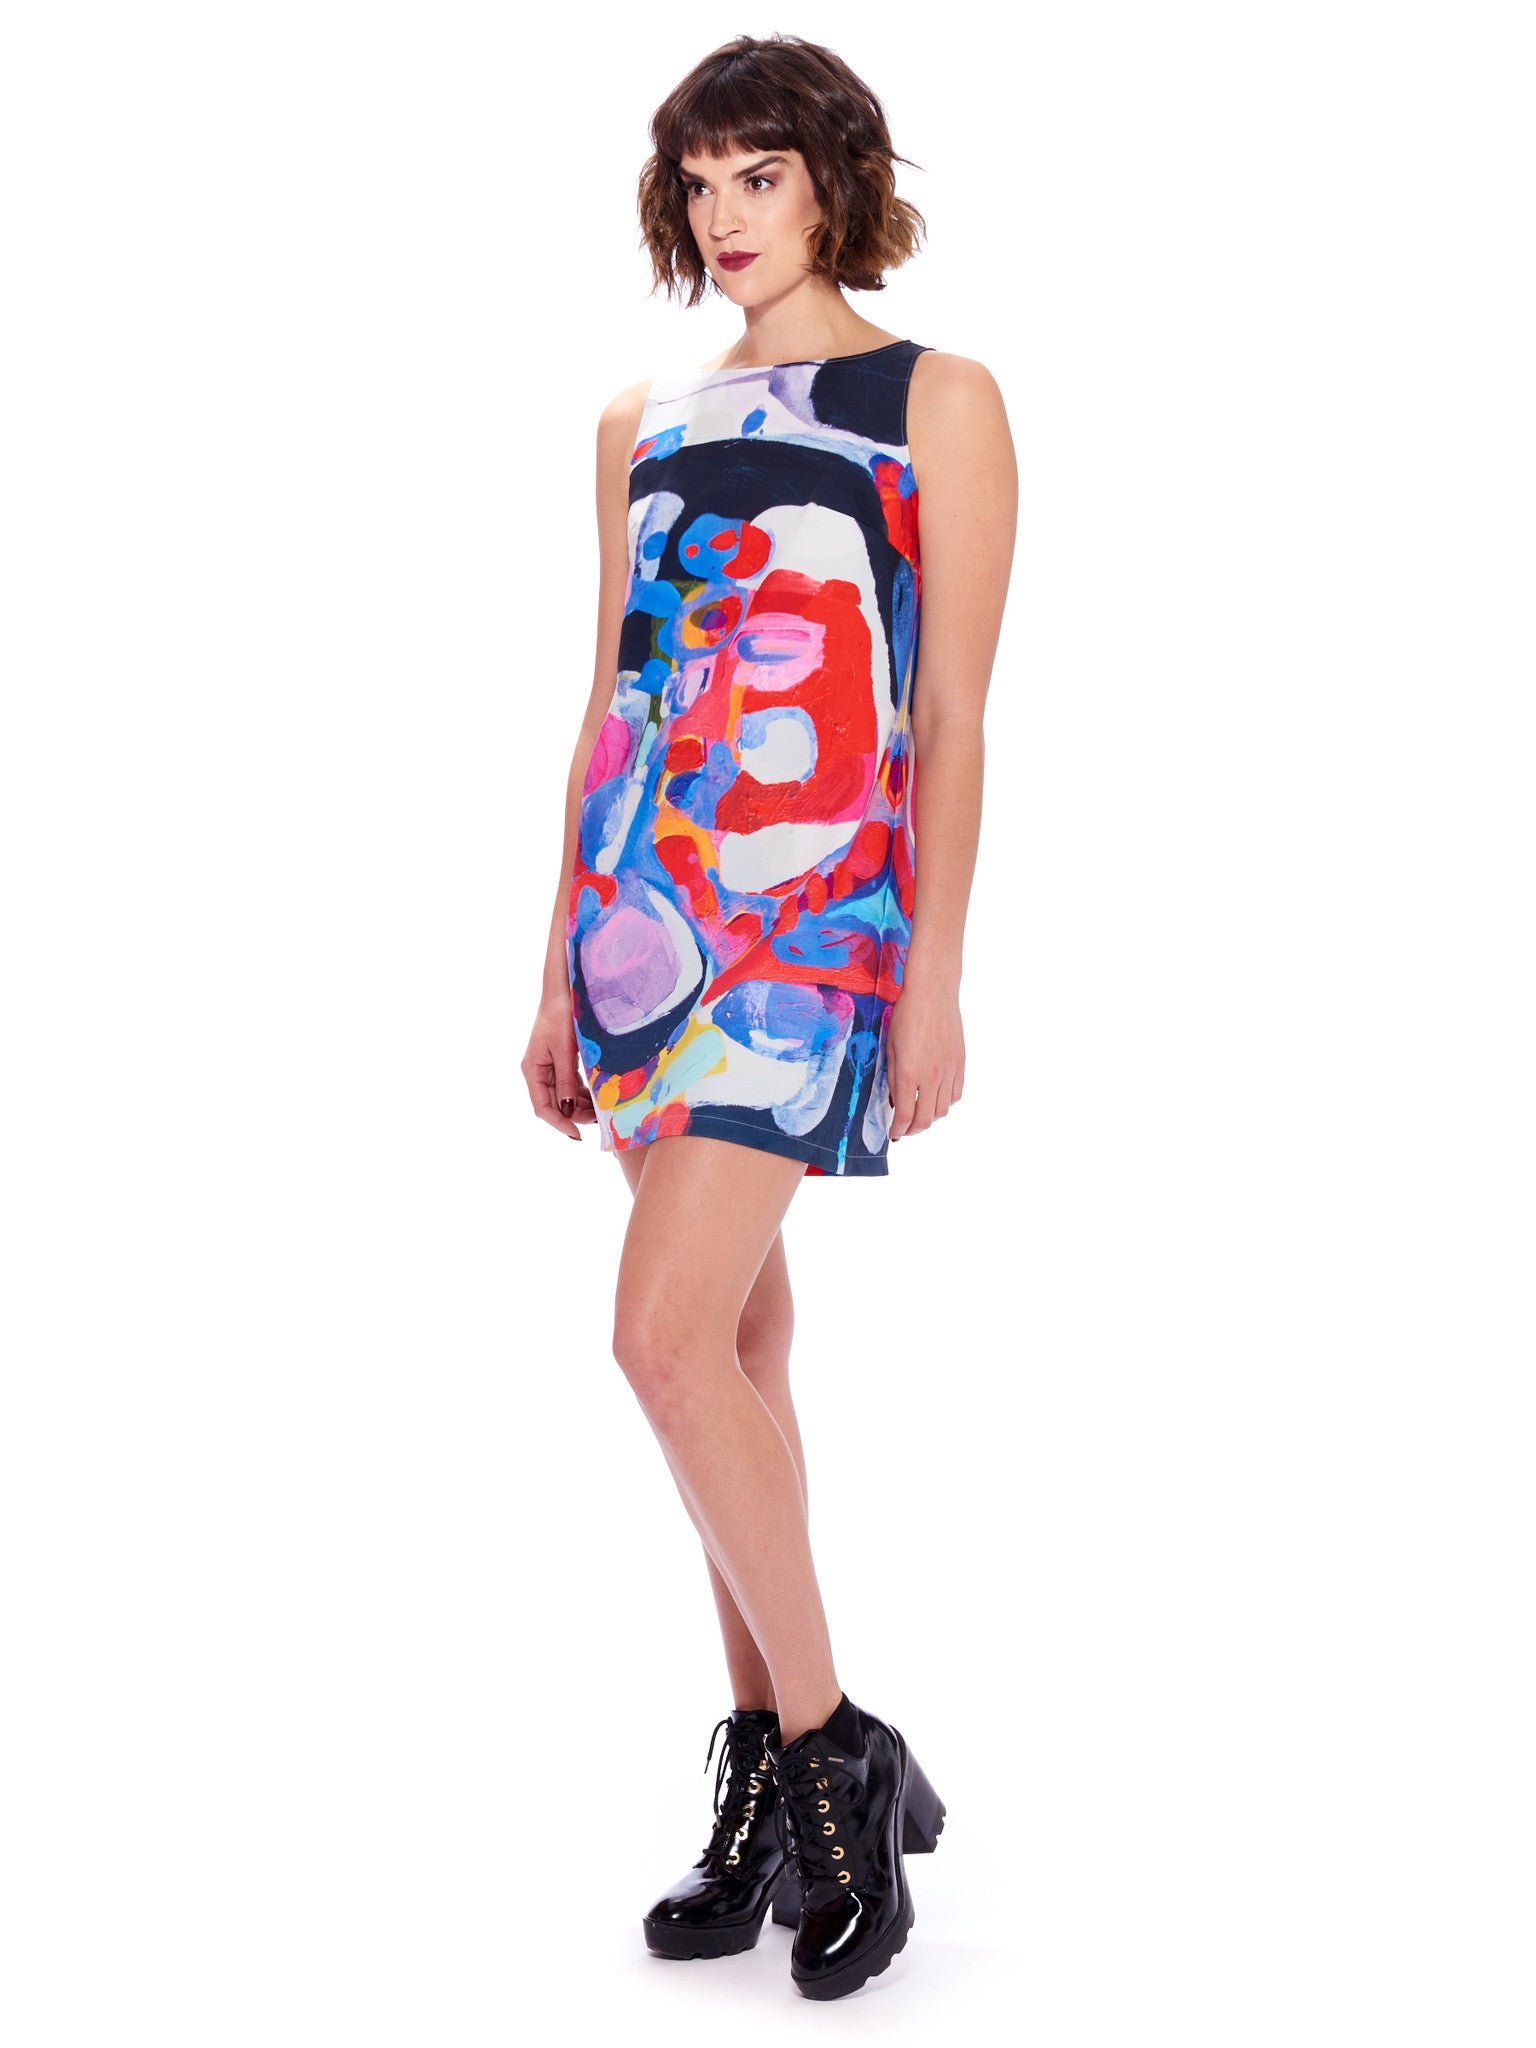 Try Me Shift Dress - Nuvango Gallery & Goods - 1